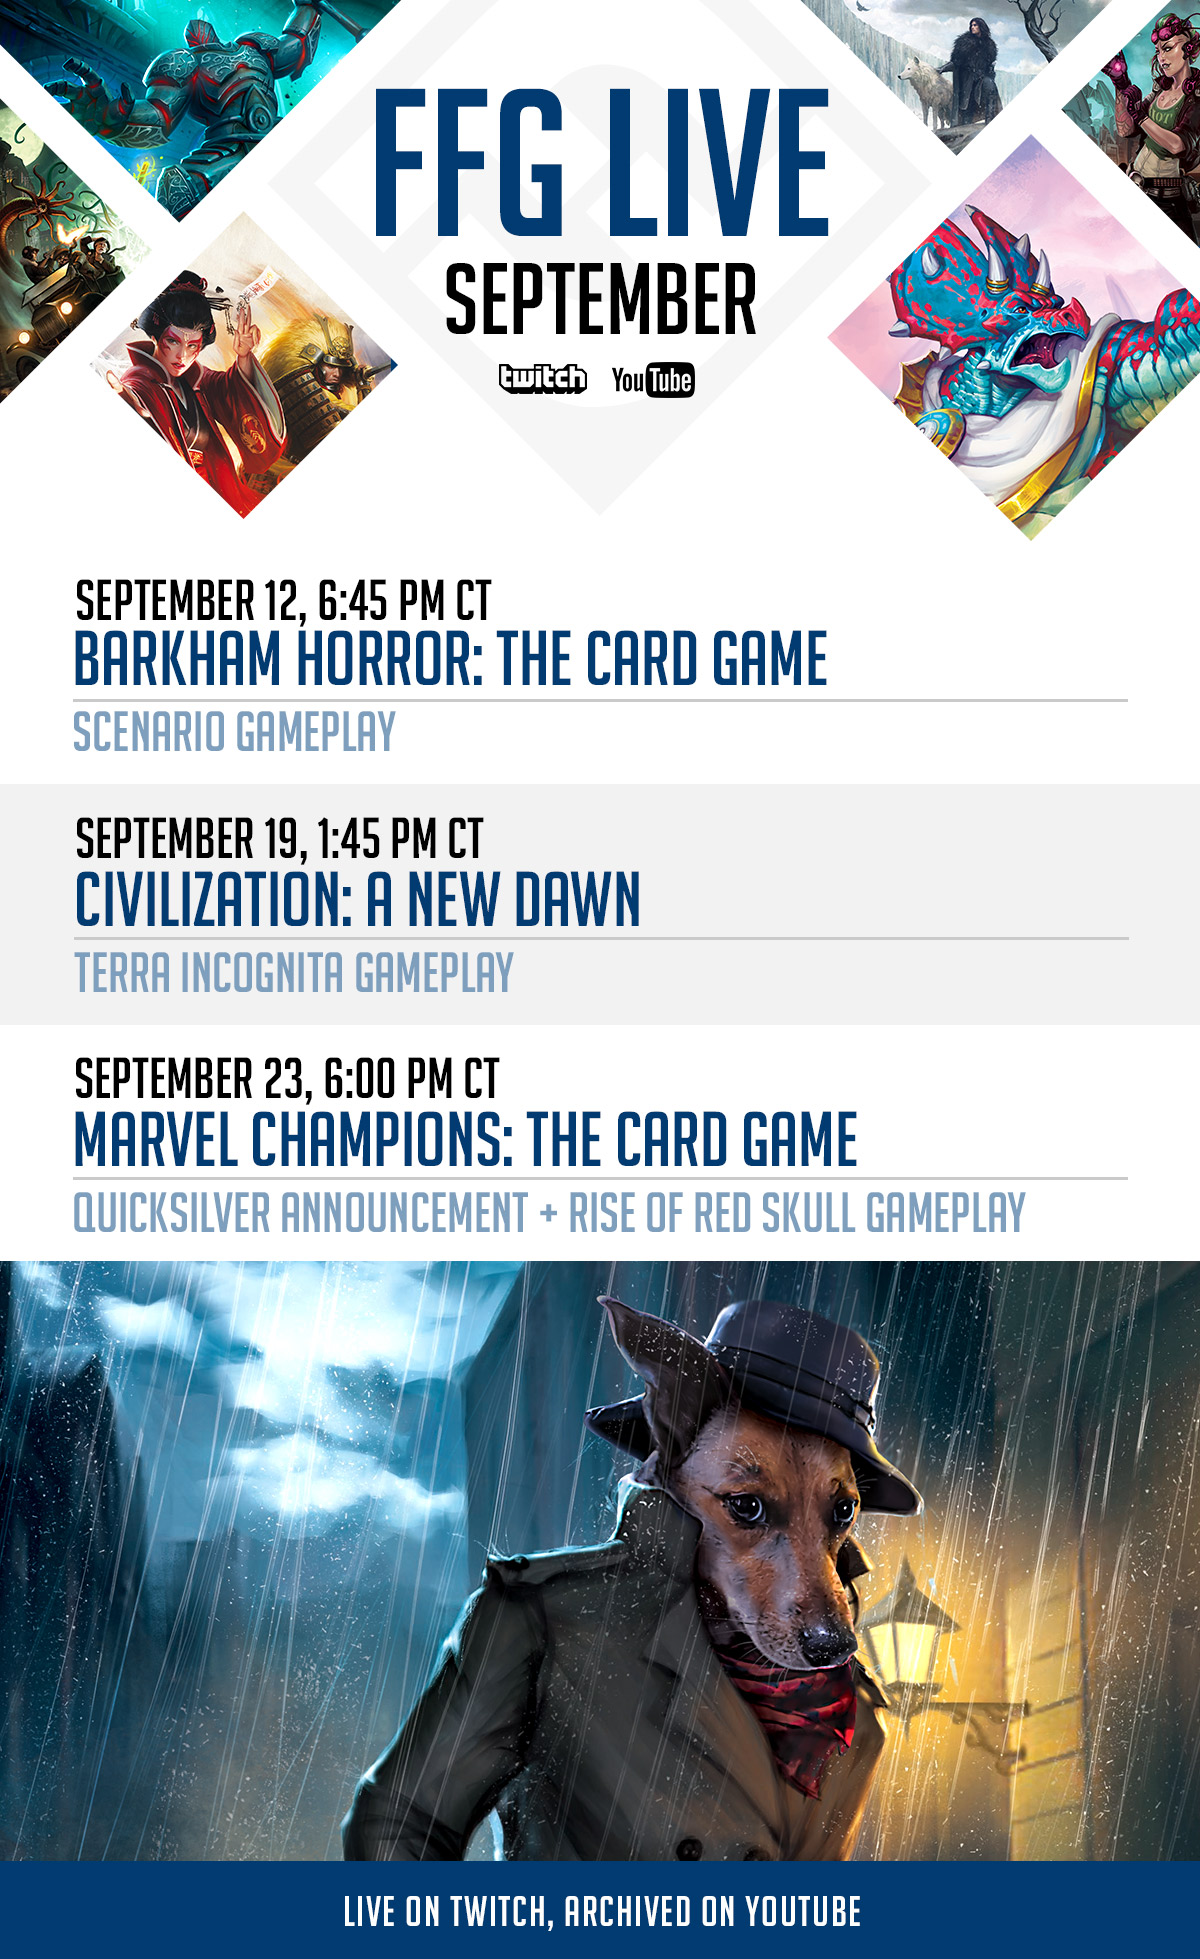 ffglive_2020-sept-schedule.jpg